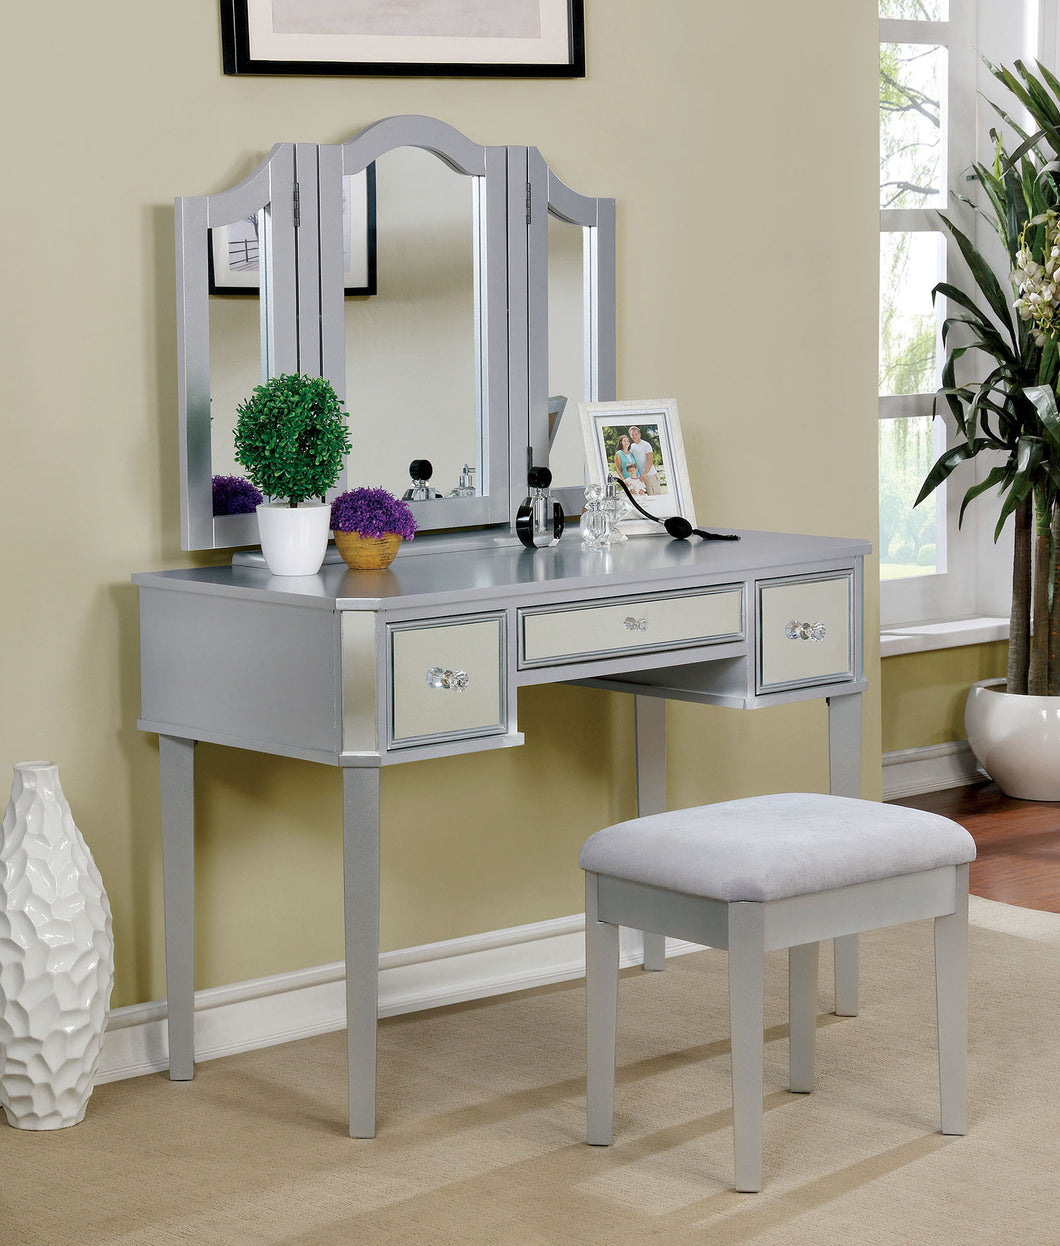 CM-DK6148SV Vanity Set - Clarisse Silver Contemporary Vanity Table with Stool